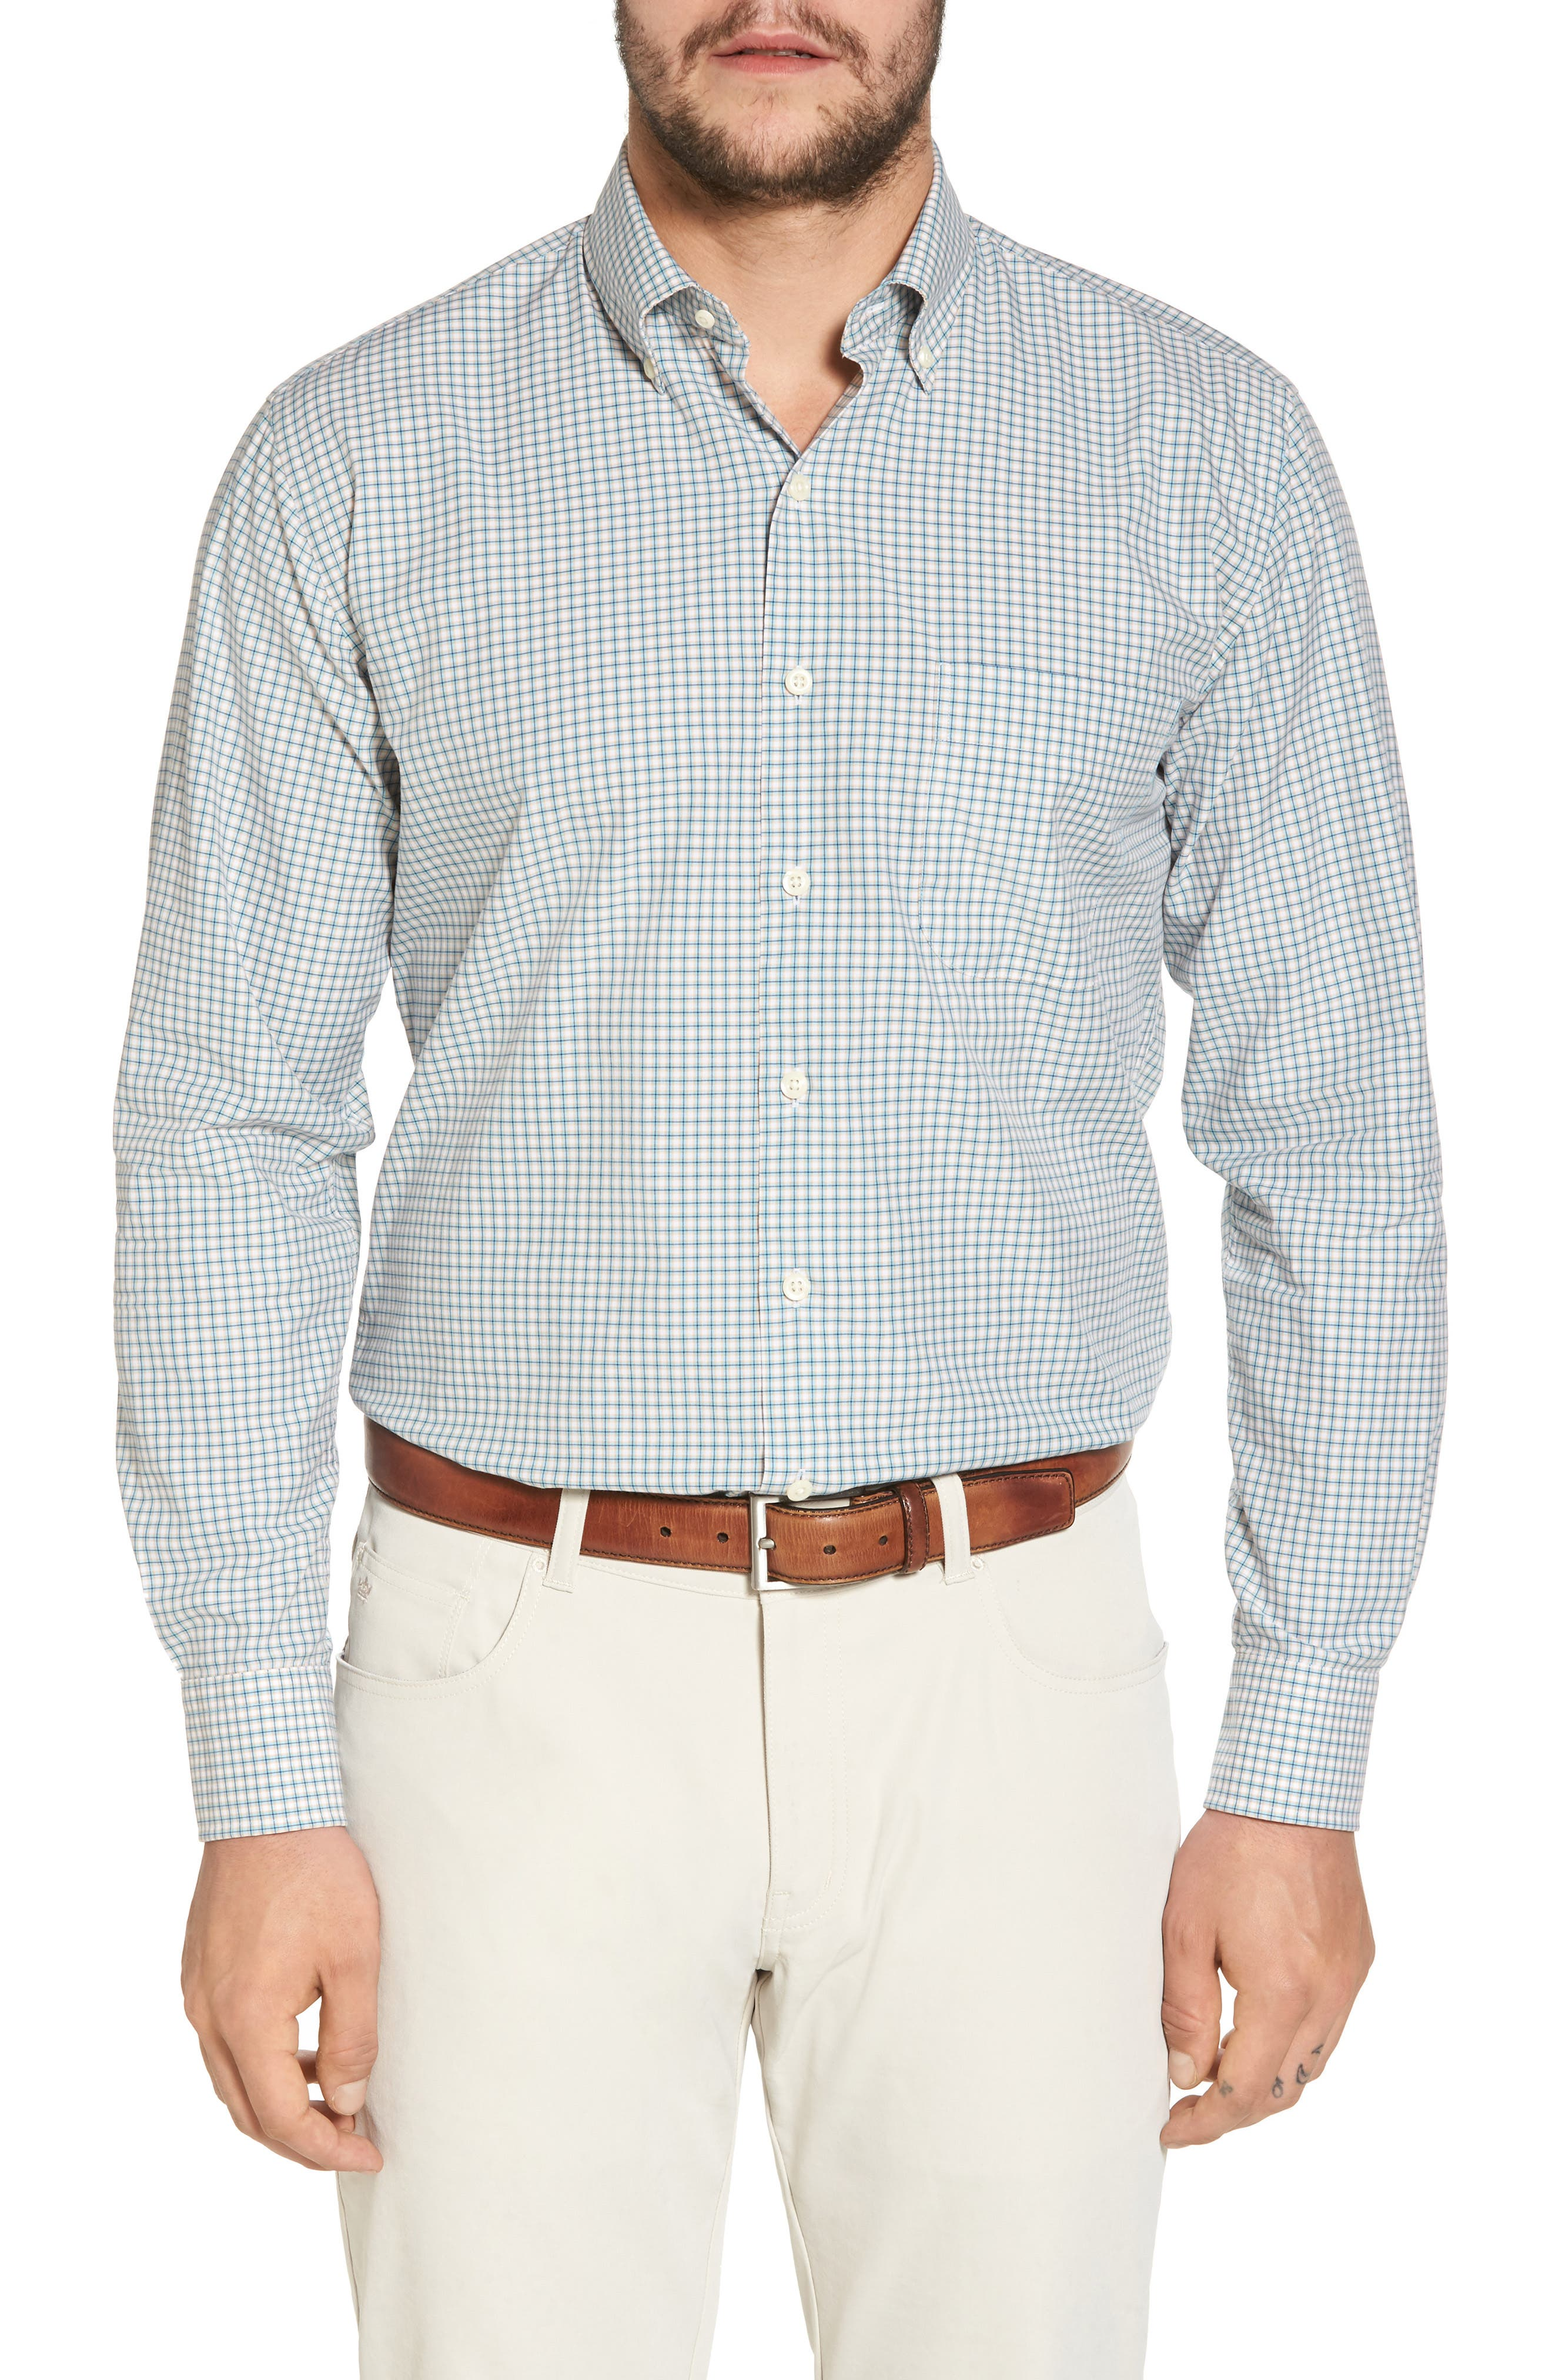 Classic Fit Alligator Check Sport Shirt,                         Main,                         color, Dreamsicle